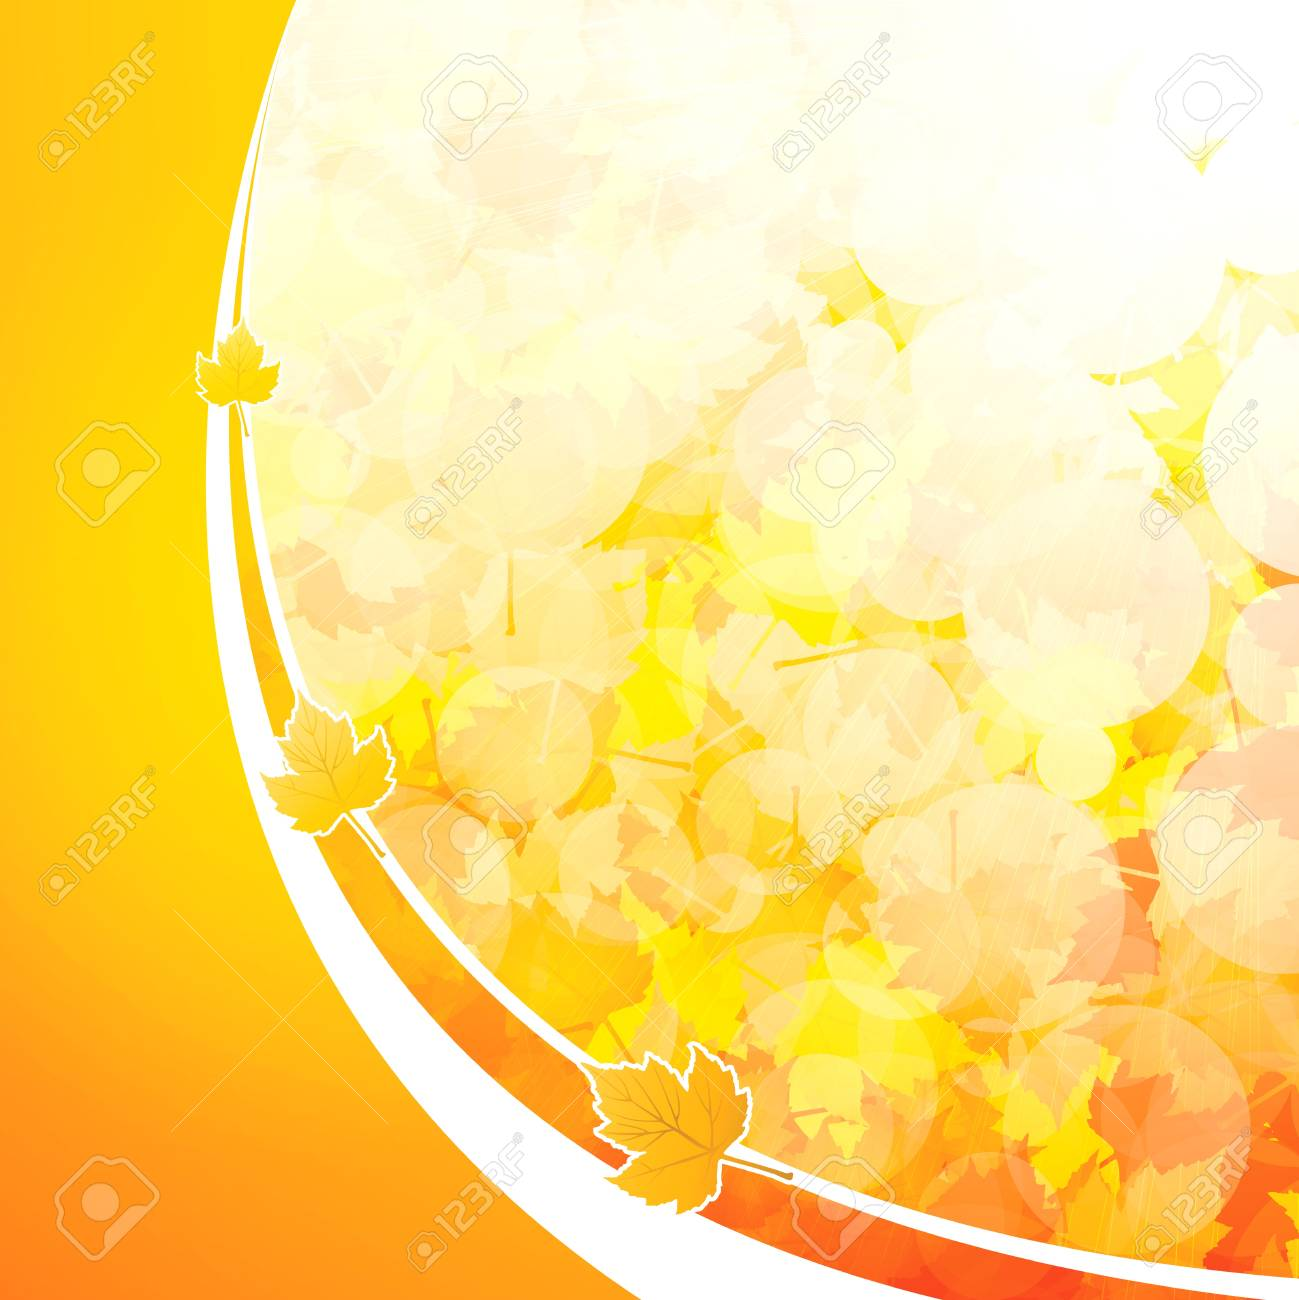 Autumnal leaf of maple and sunlight background Stock Vector - 10445777